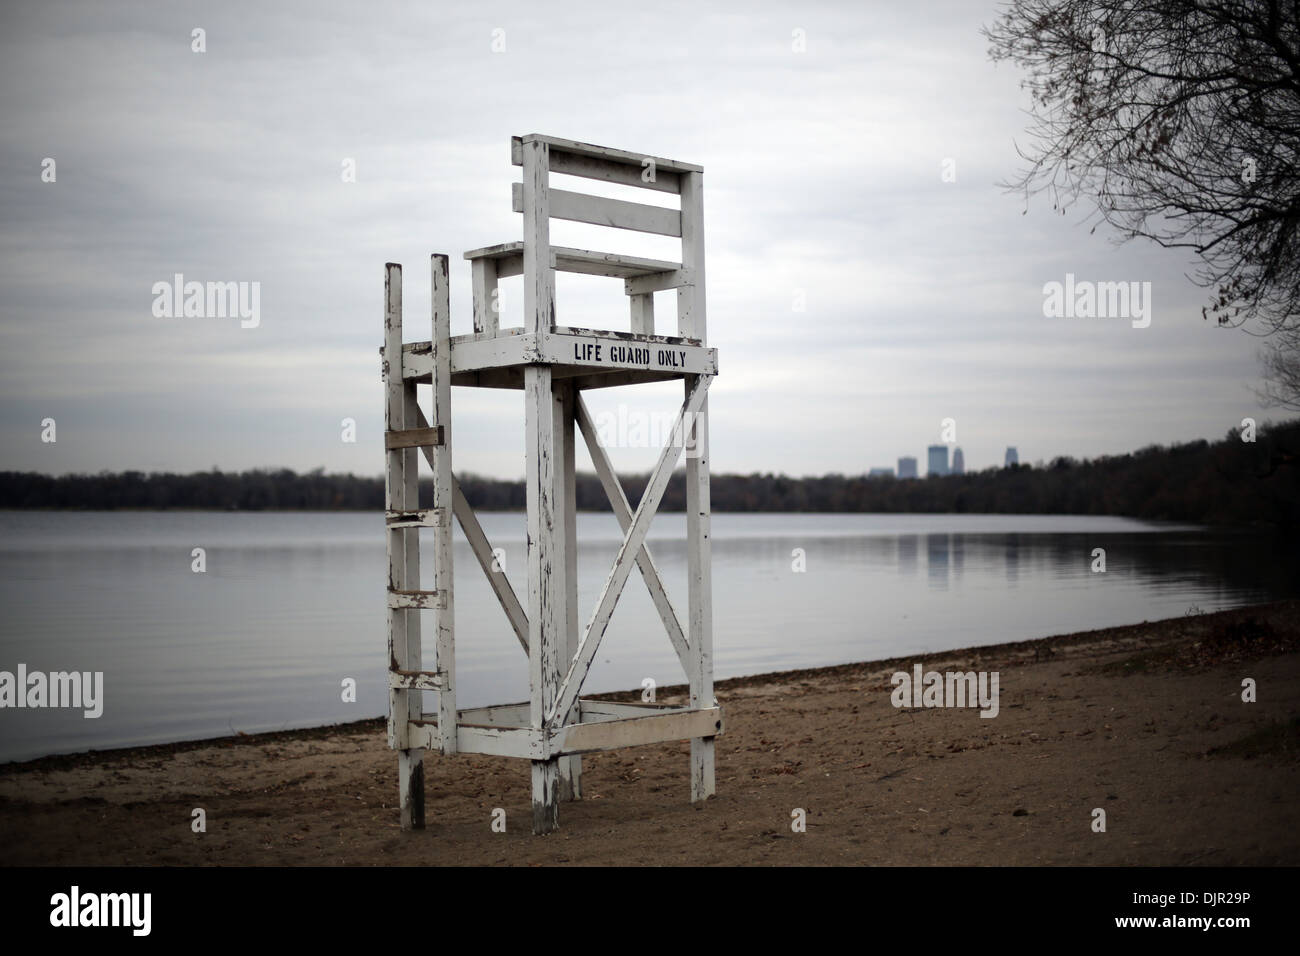 An empty lifeguard stand near a lake in Minneapolis in the off season. - Stock Image